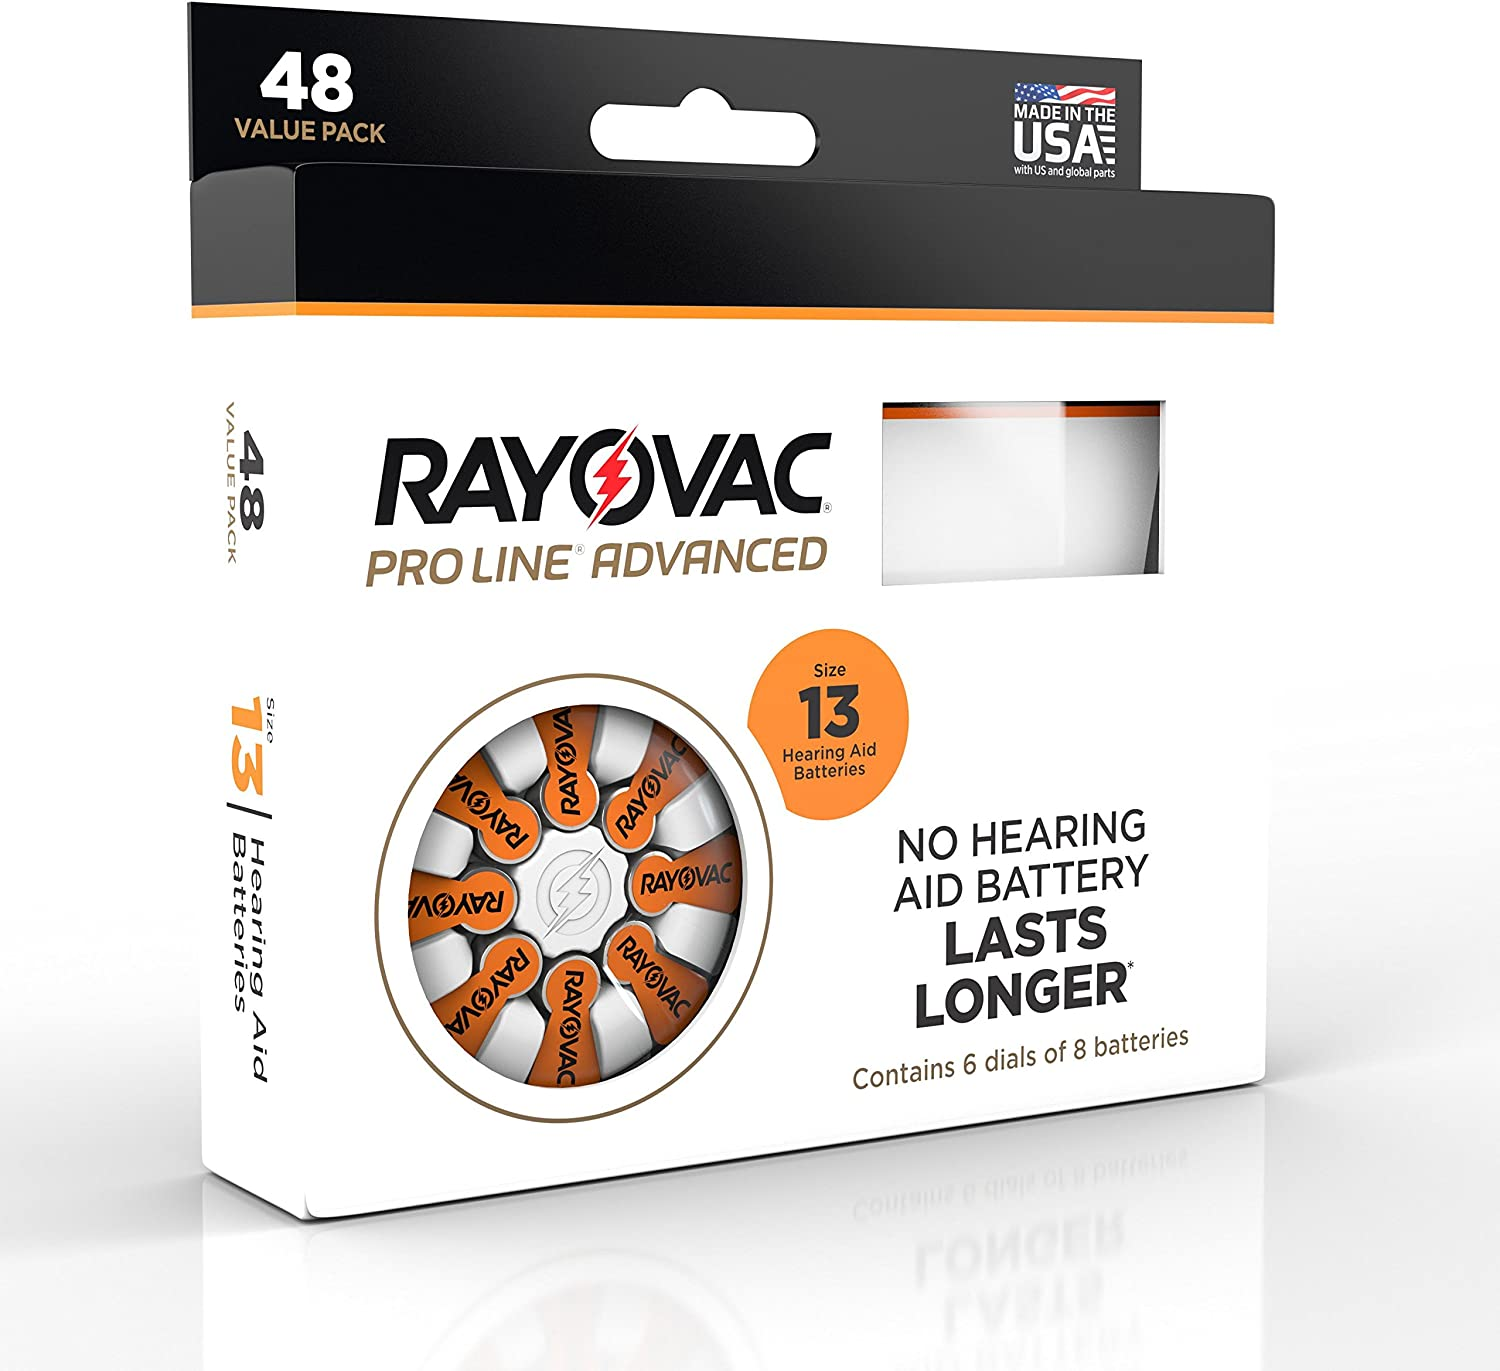 Rayovac Proline Advance Hearing Aid Batteries, Size 13(48 count)